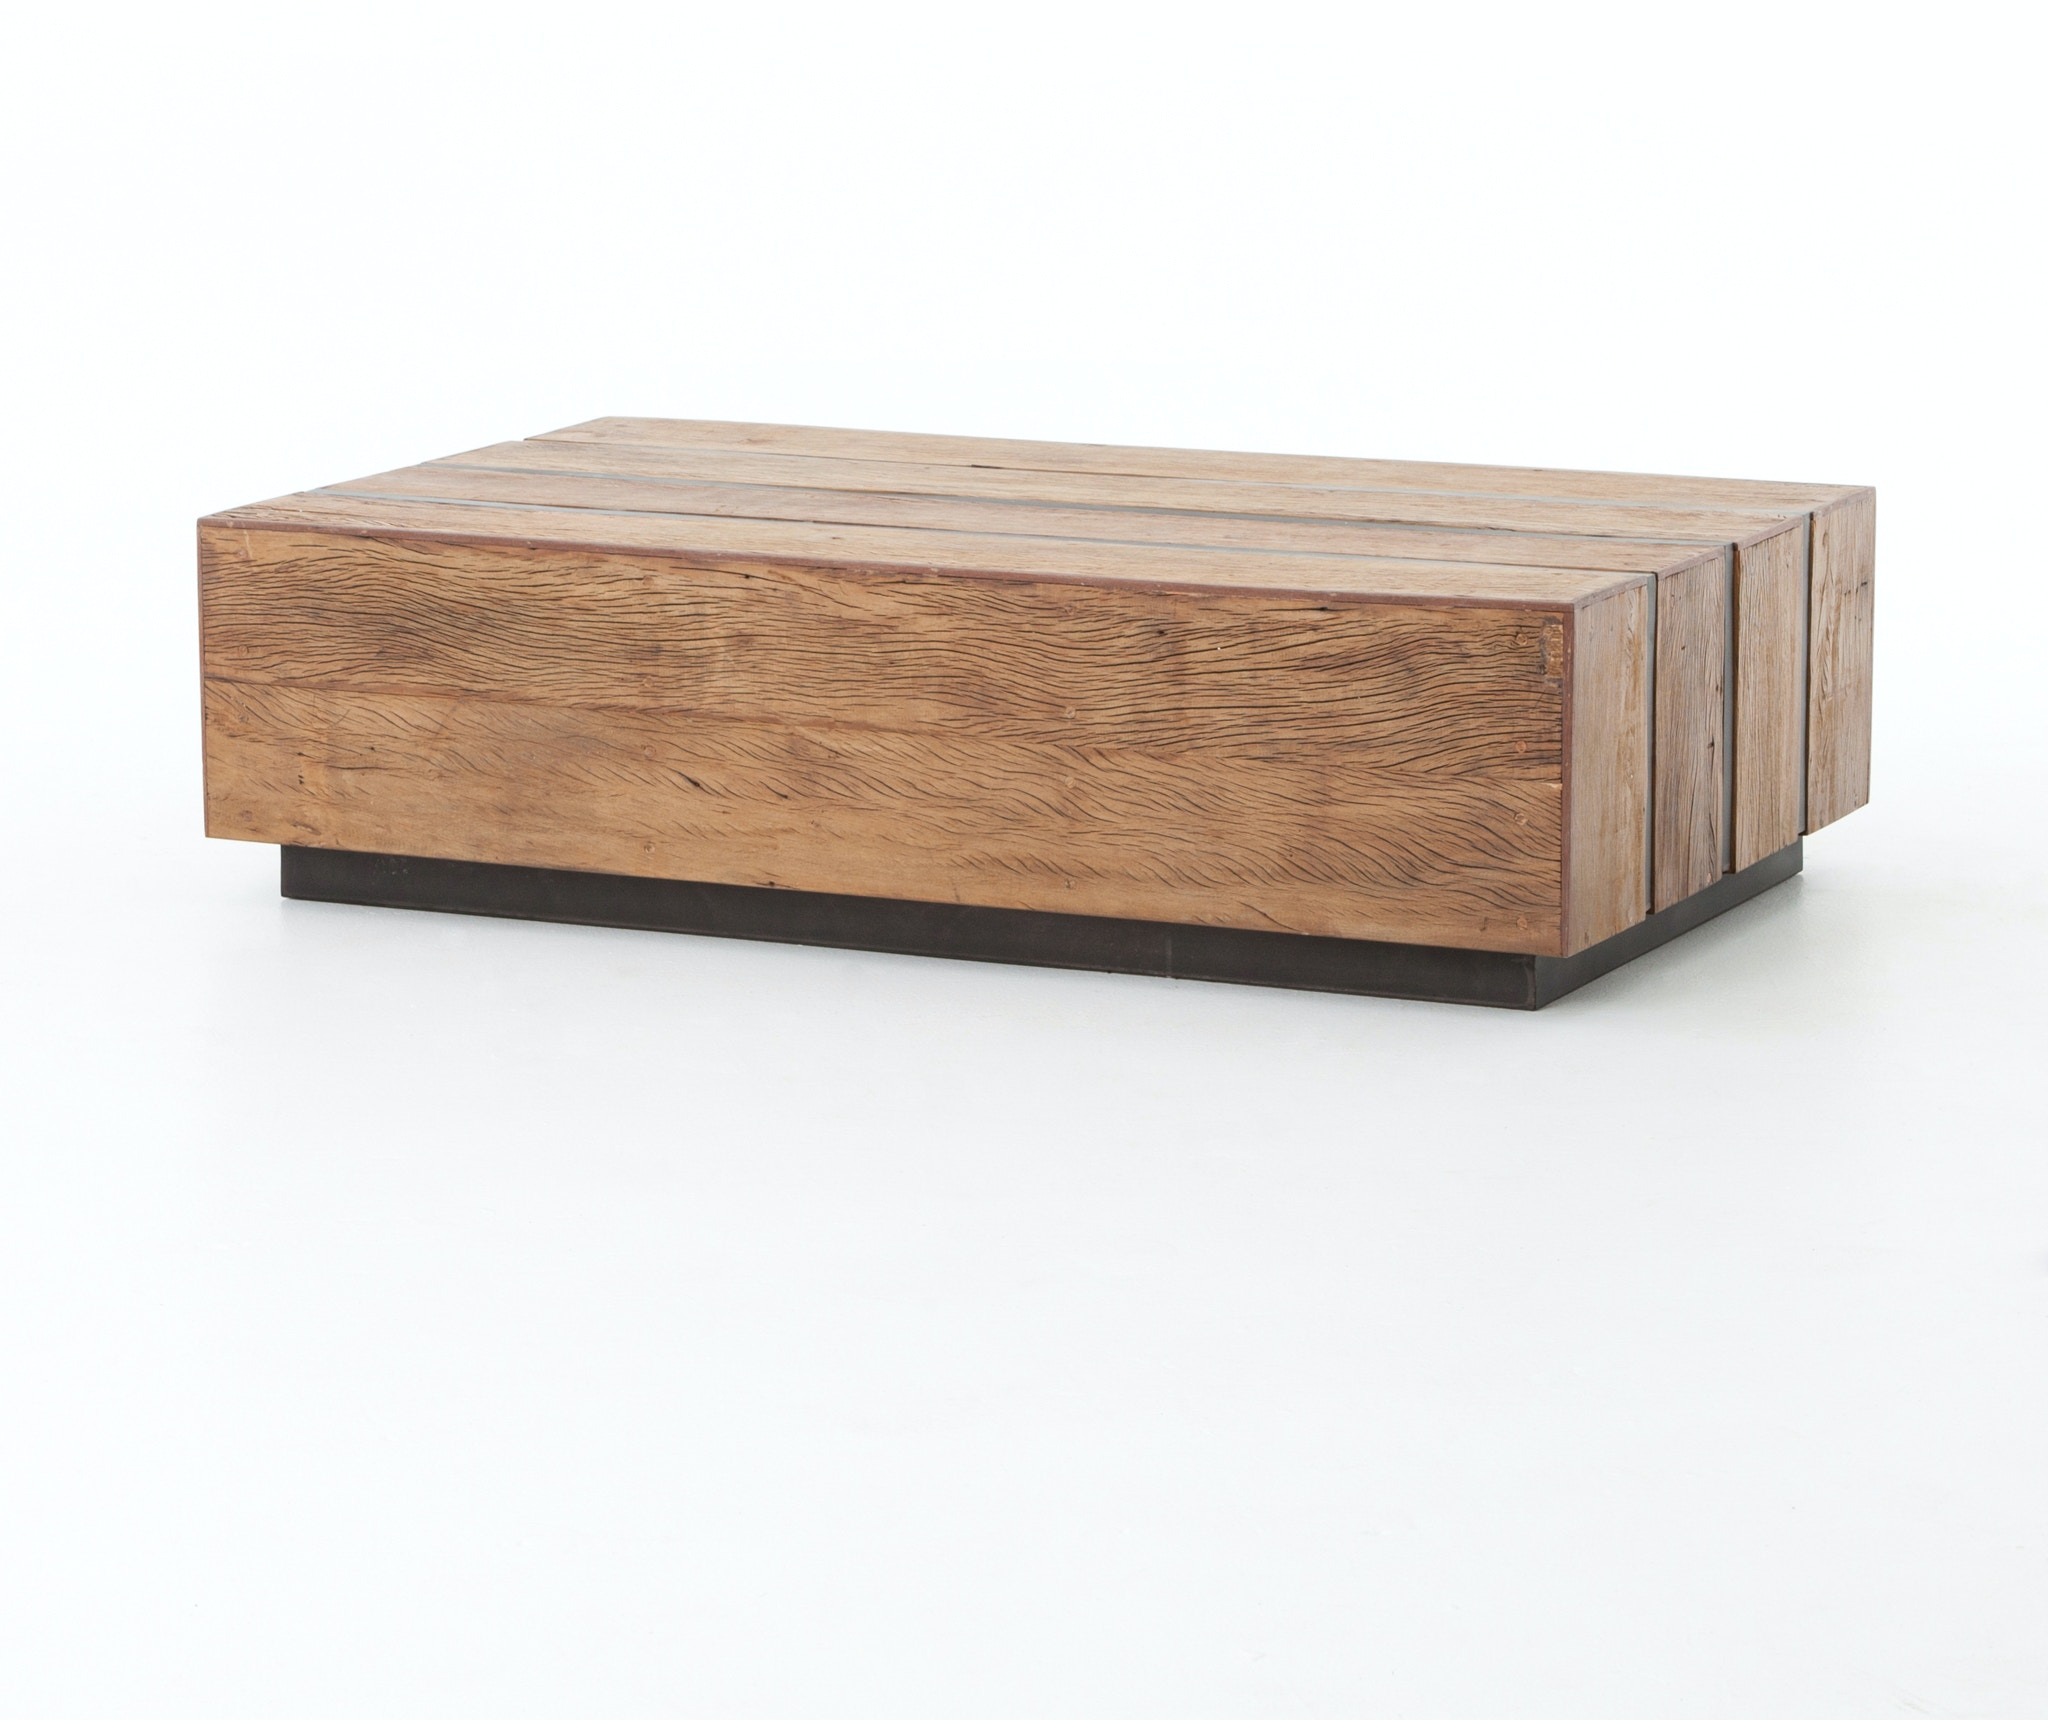 Four Hands Furniture NBWY 011 Living Room GRADY SLAB COFFEE TABLE 53